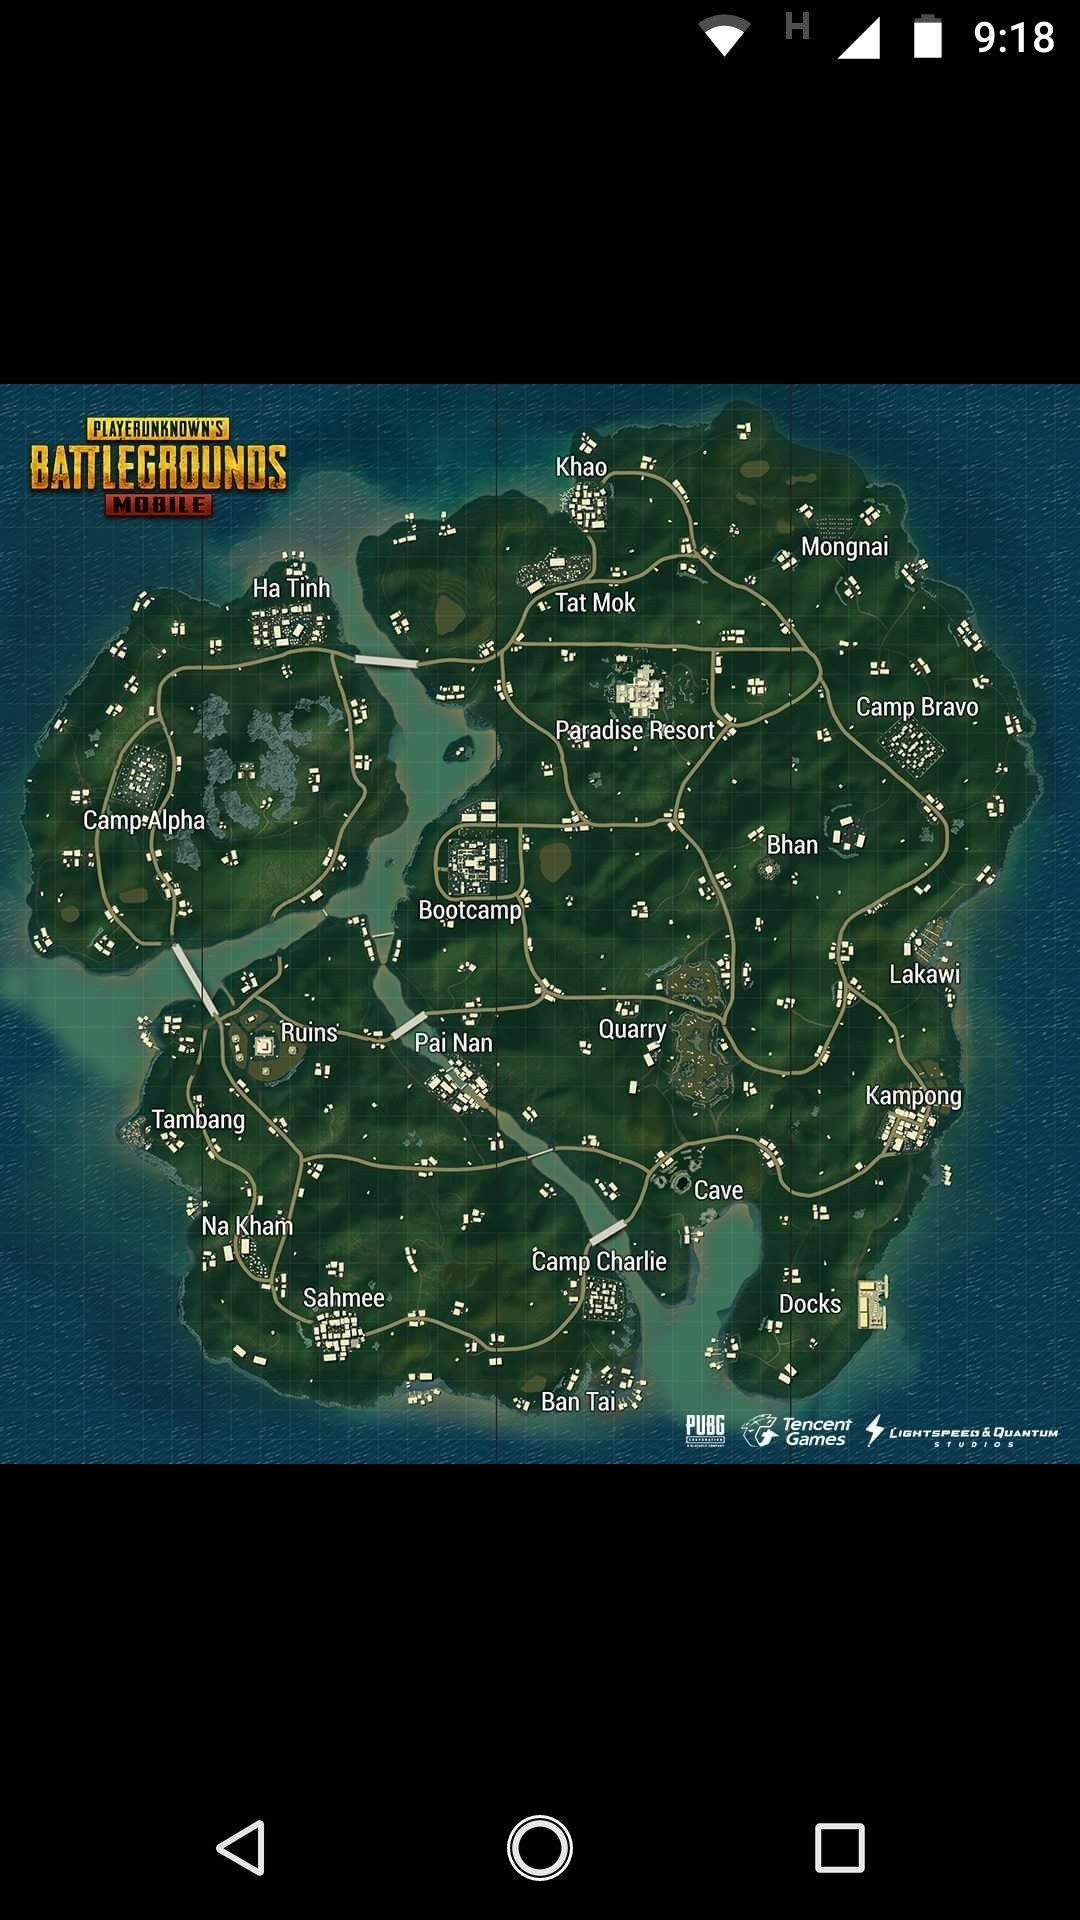 Pubg Sanhok Map Gaming Wallpapers Map 480x800 Wallpaper Pubg Map Loot 100 Images Holy Loot The Best Lo Iphone Wallpaper Kawaii Gaming Wallpapers Map Wallpaper